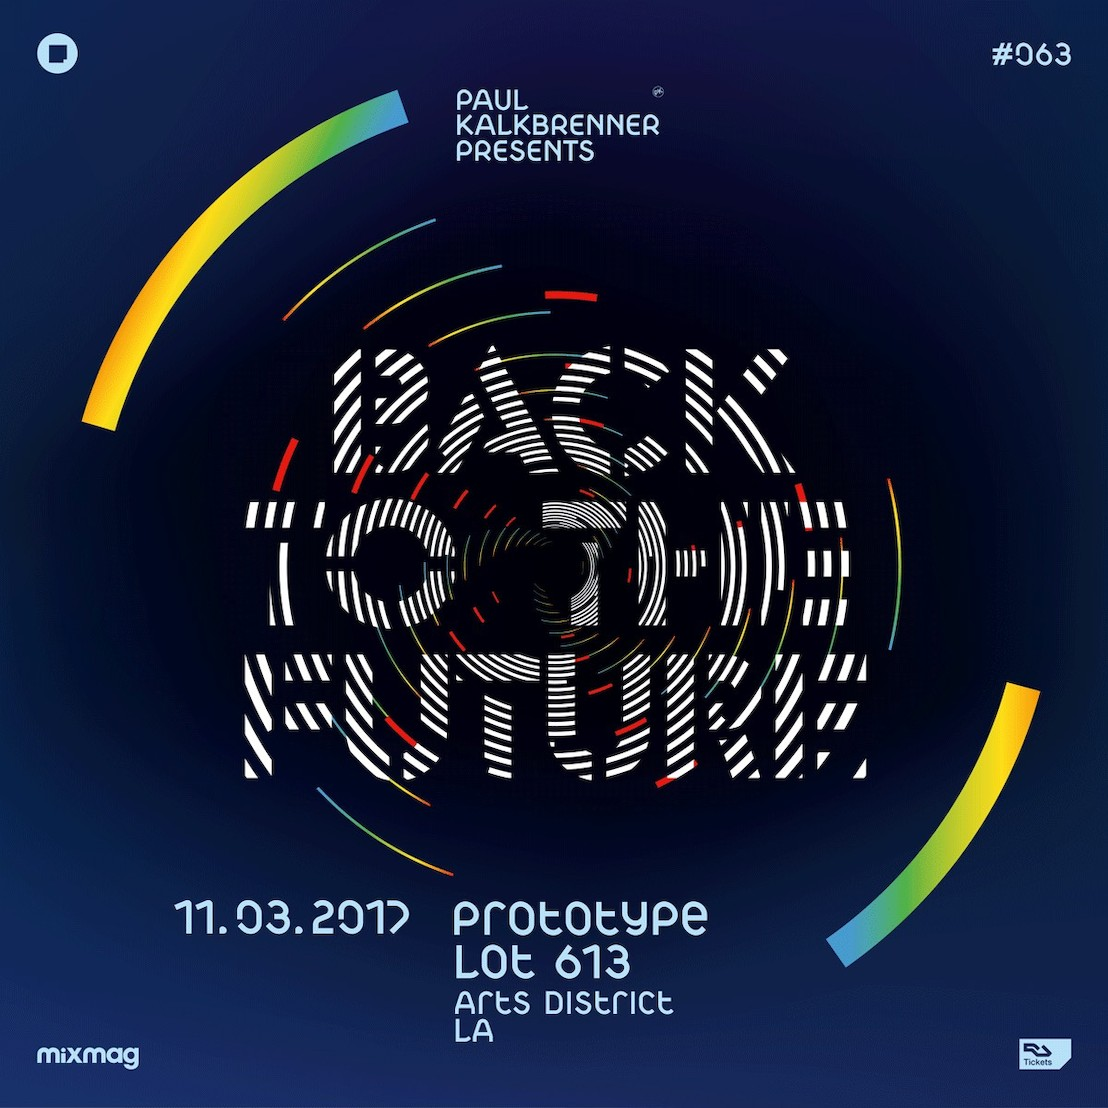 Paul Kalkbrenner to debut 'Back to the Future' live show in LAPK BTTF Lot NY